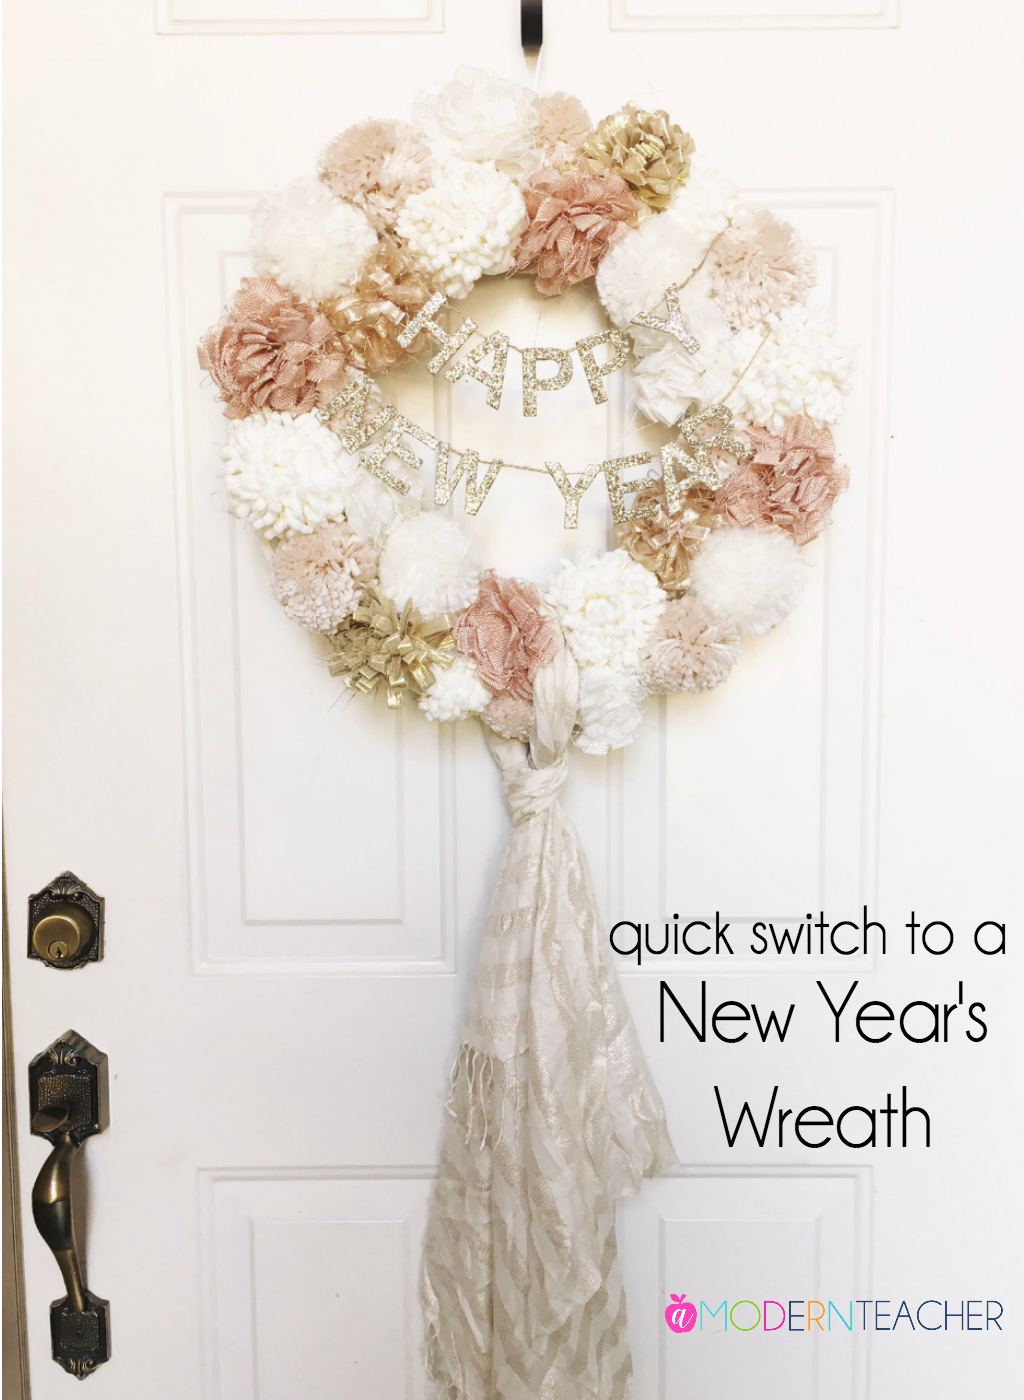 New Year's Eve Wreath idea | A quick idea on changing your Christmas wreath to a New Year's wreath